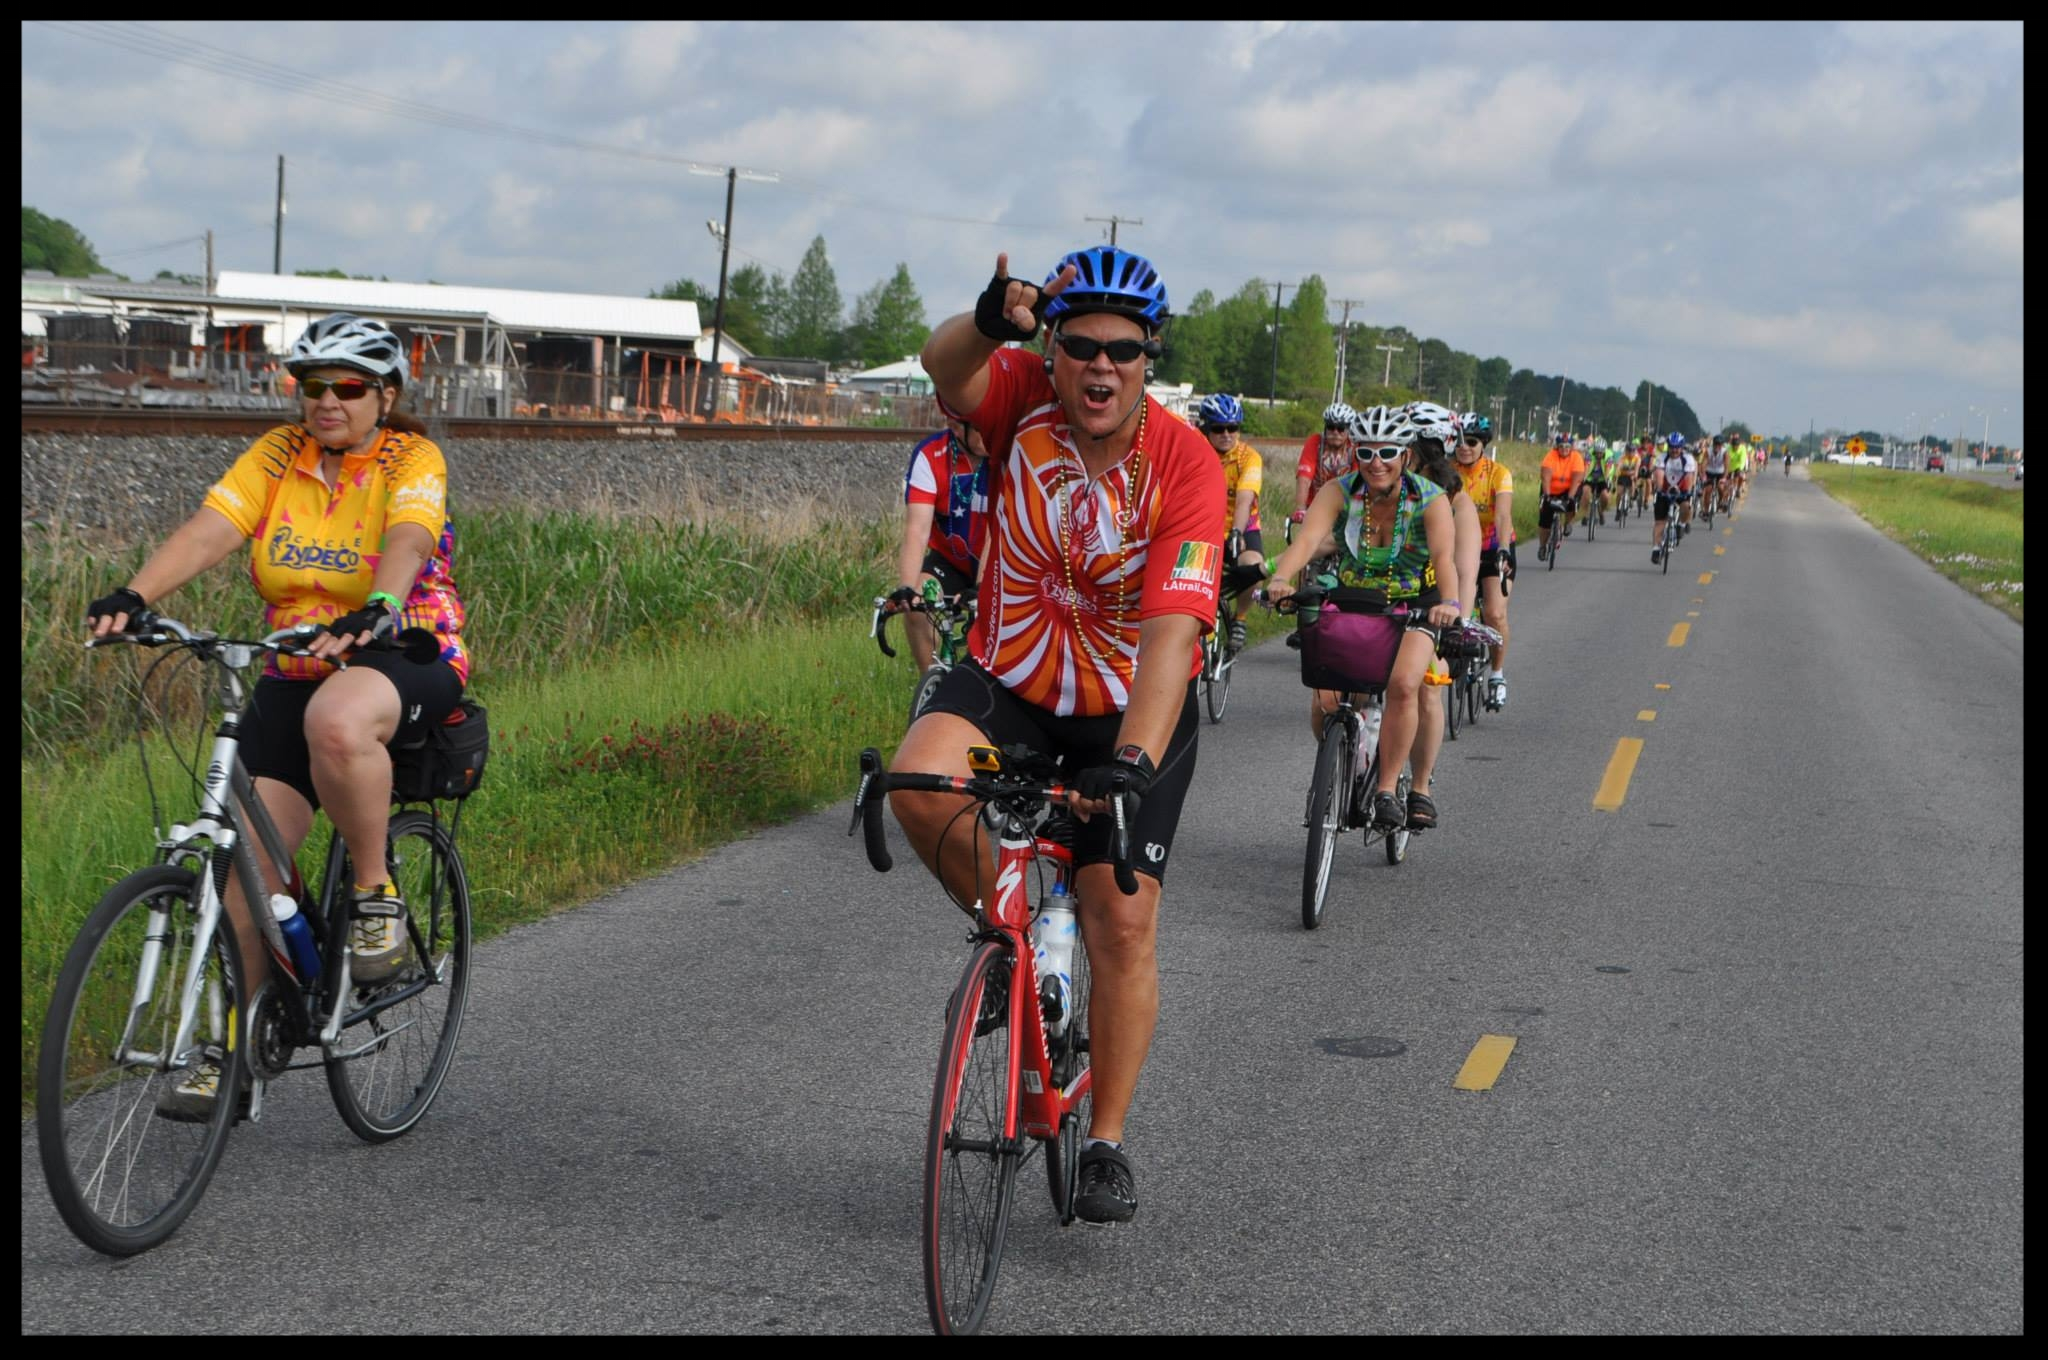 Hybrids, Cruisers, Tandems, Folding Bikes, and many many more varieties of bicycles are on the road for Cycle Zydeco.